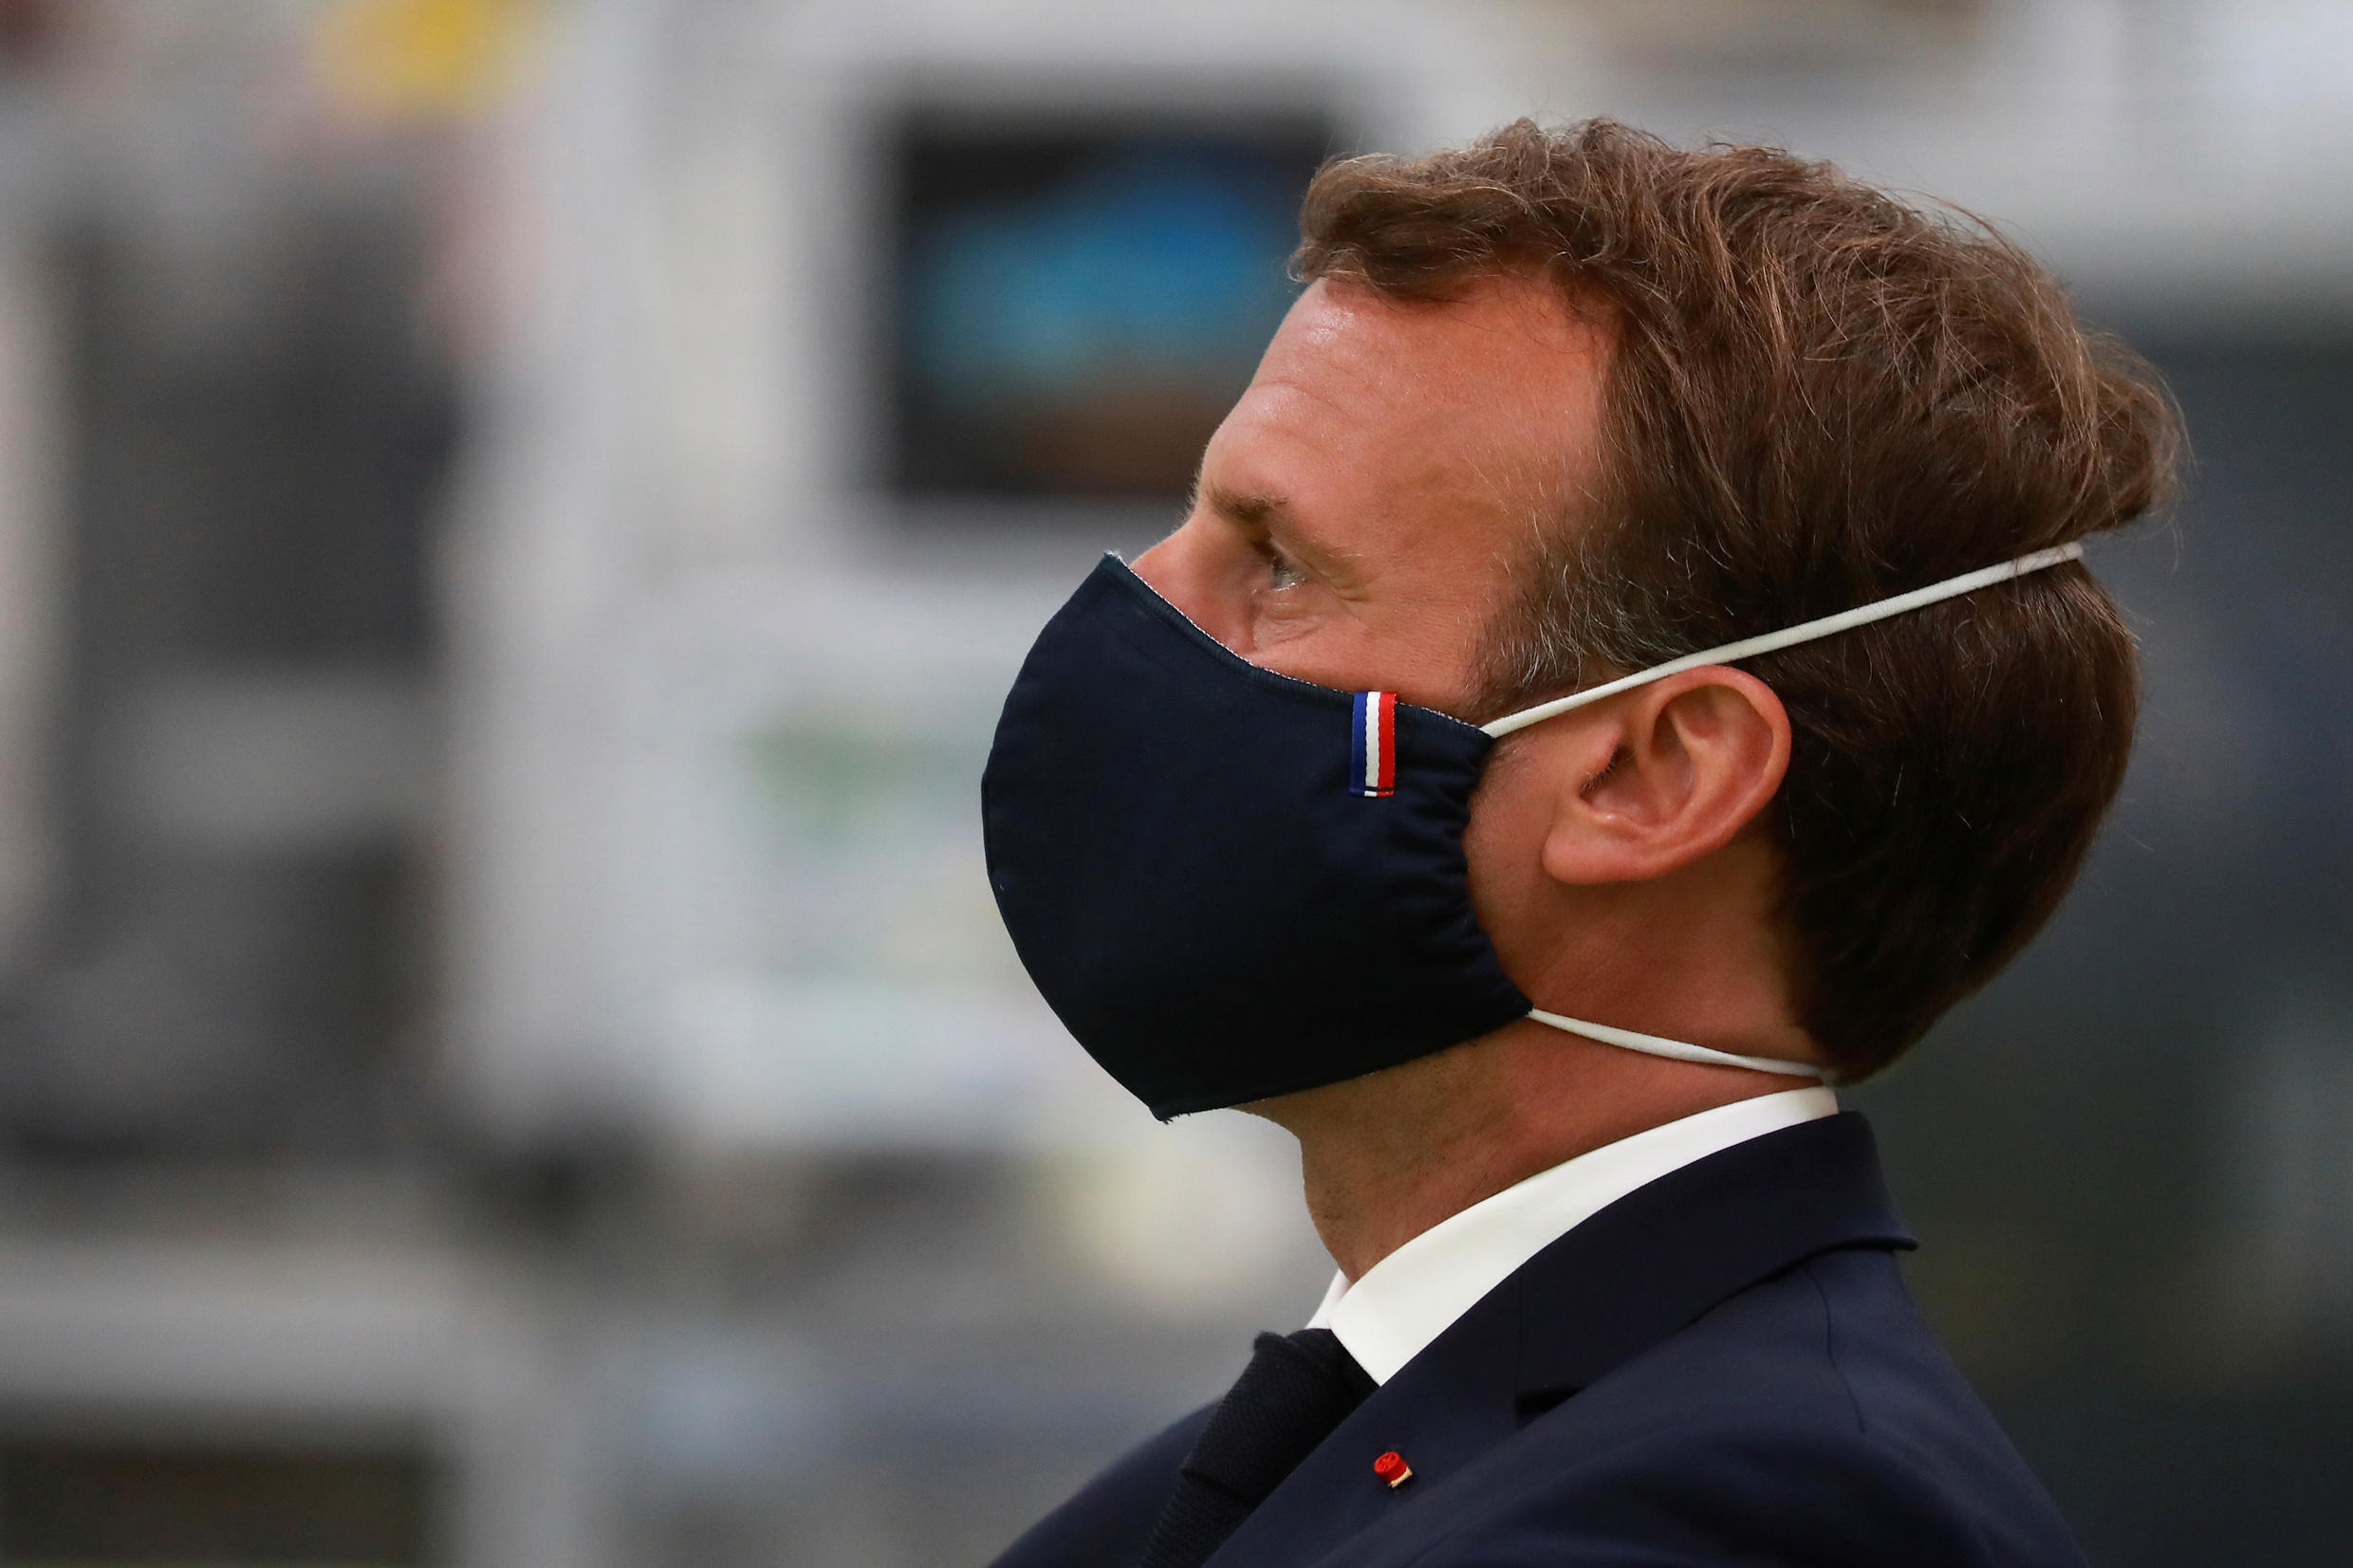 French President Emmanuel Macron, wearing a protective mask, looks on as he visits a factory of manufacturer Valéo in Etaples, near Le Touquet, France May 26, 2020.